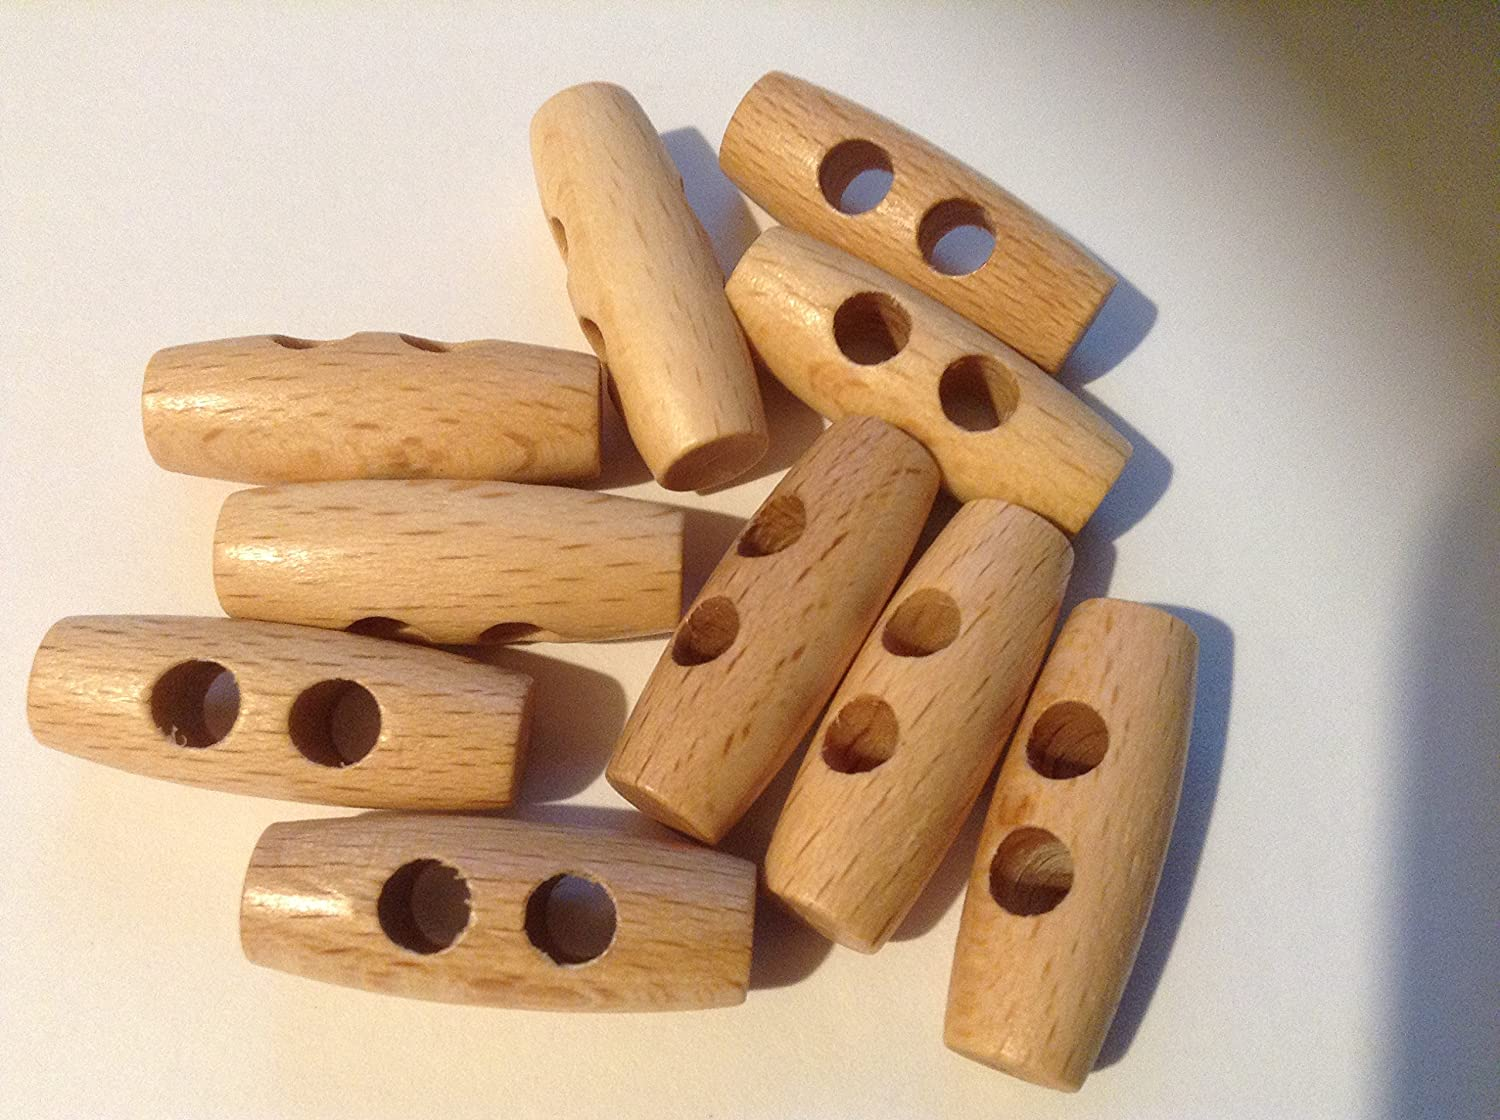 10 x 30mm wooden Toggle Button. Ideal for dressmaking and crafting. These toggles are two holes. Sew Many Buttons